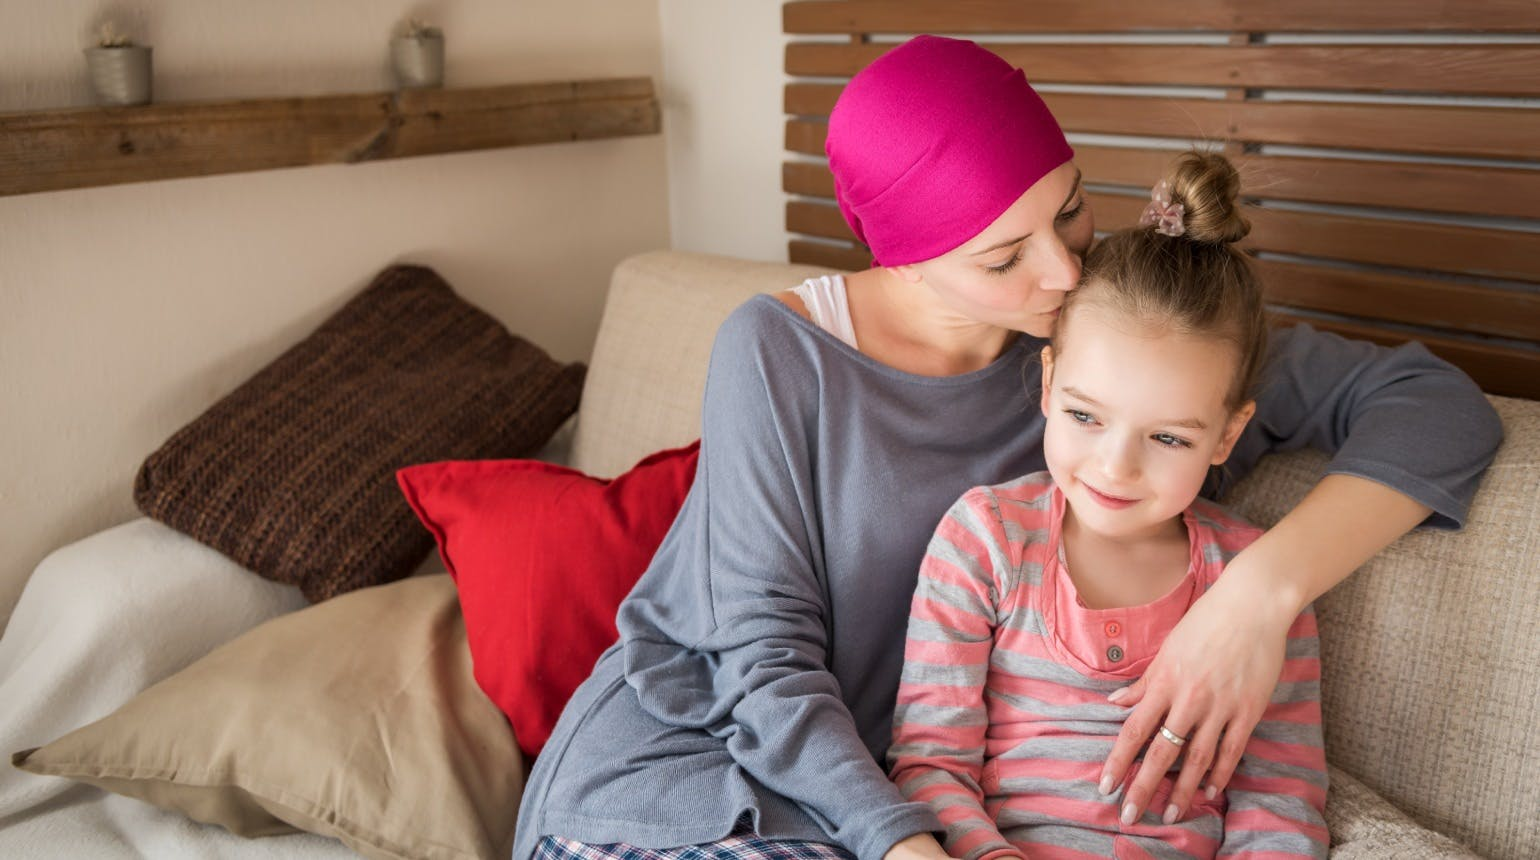 Young adult female cancer patient spending time with her daughter at home, relaxing on the couch